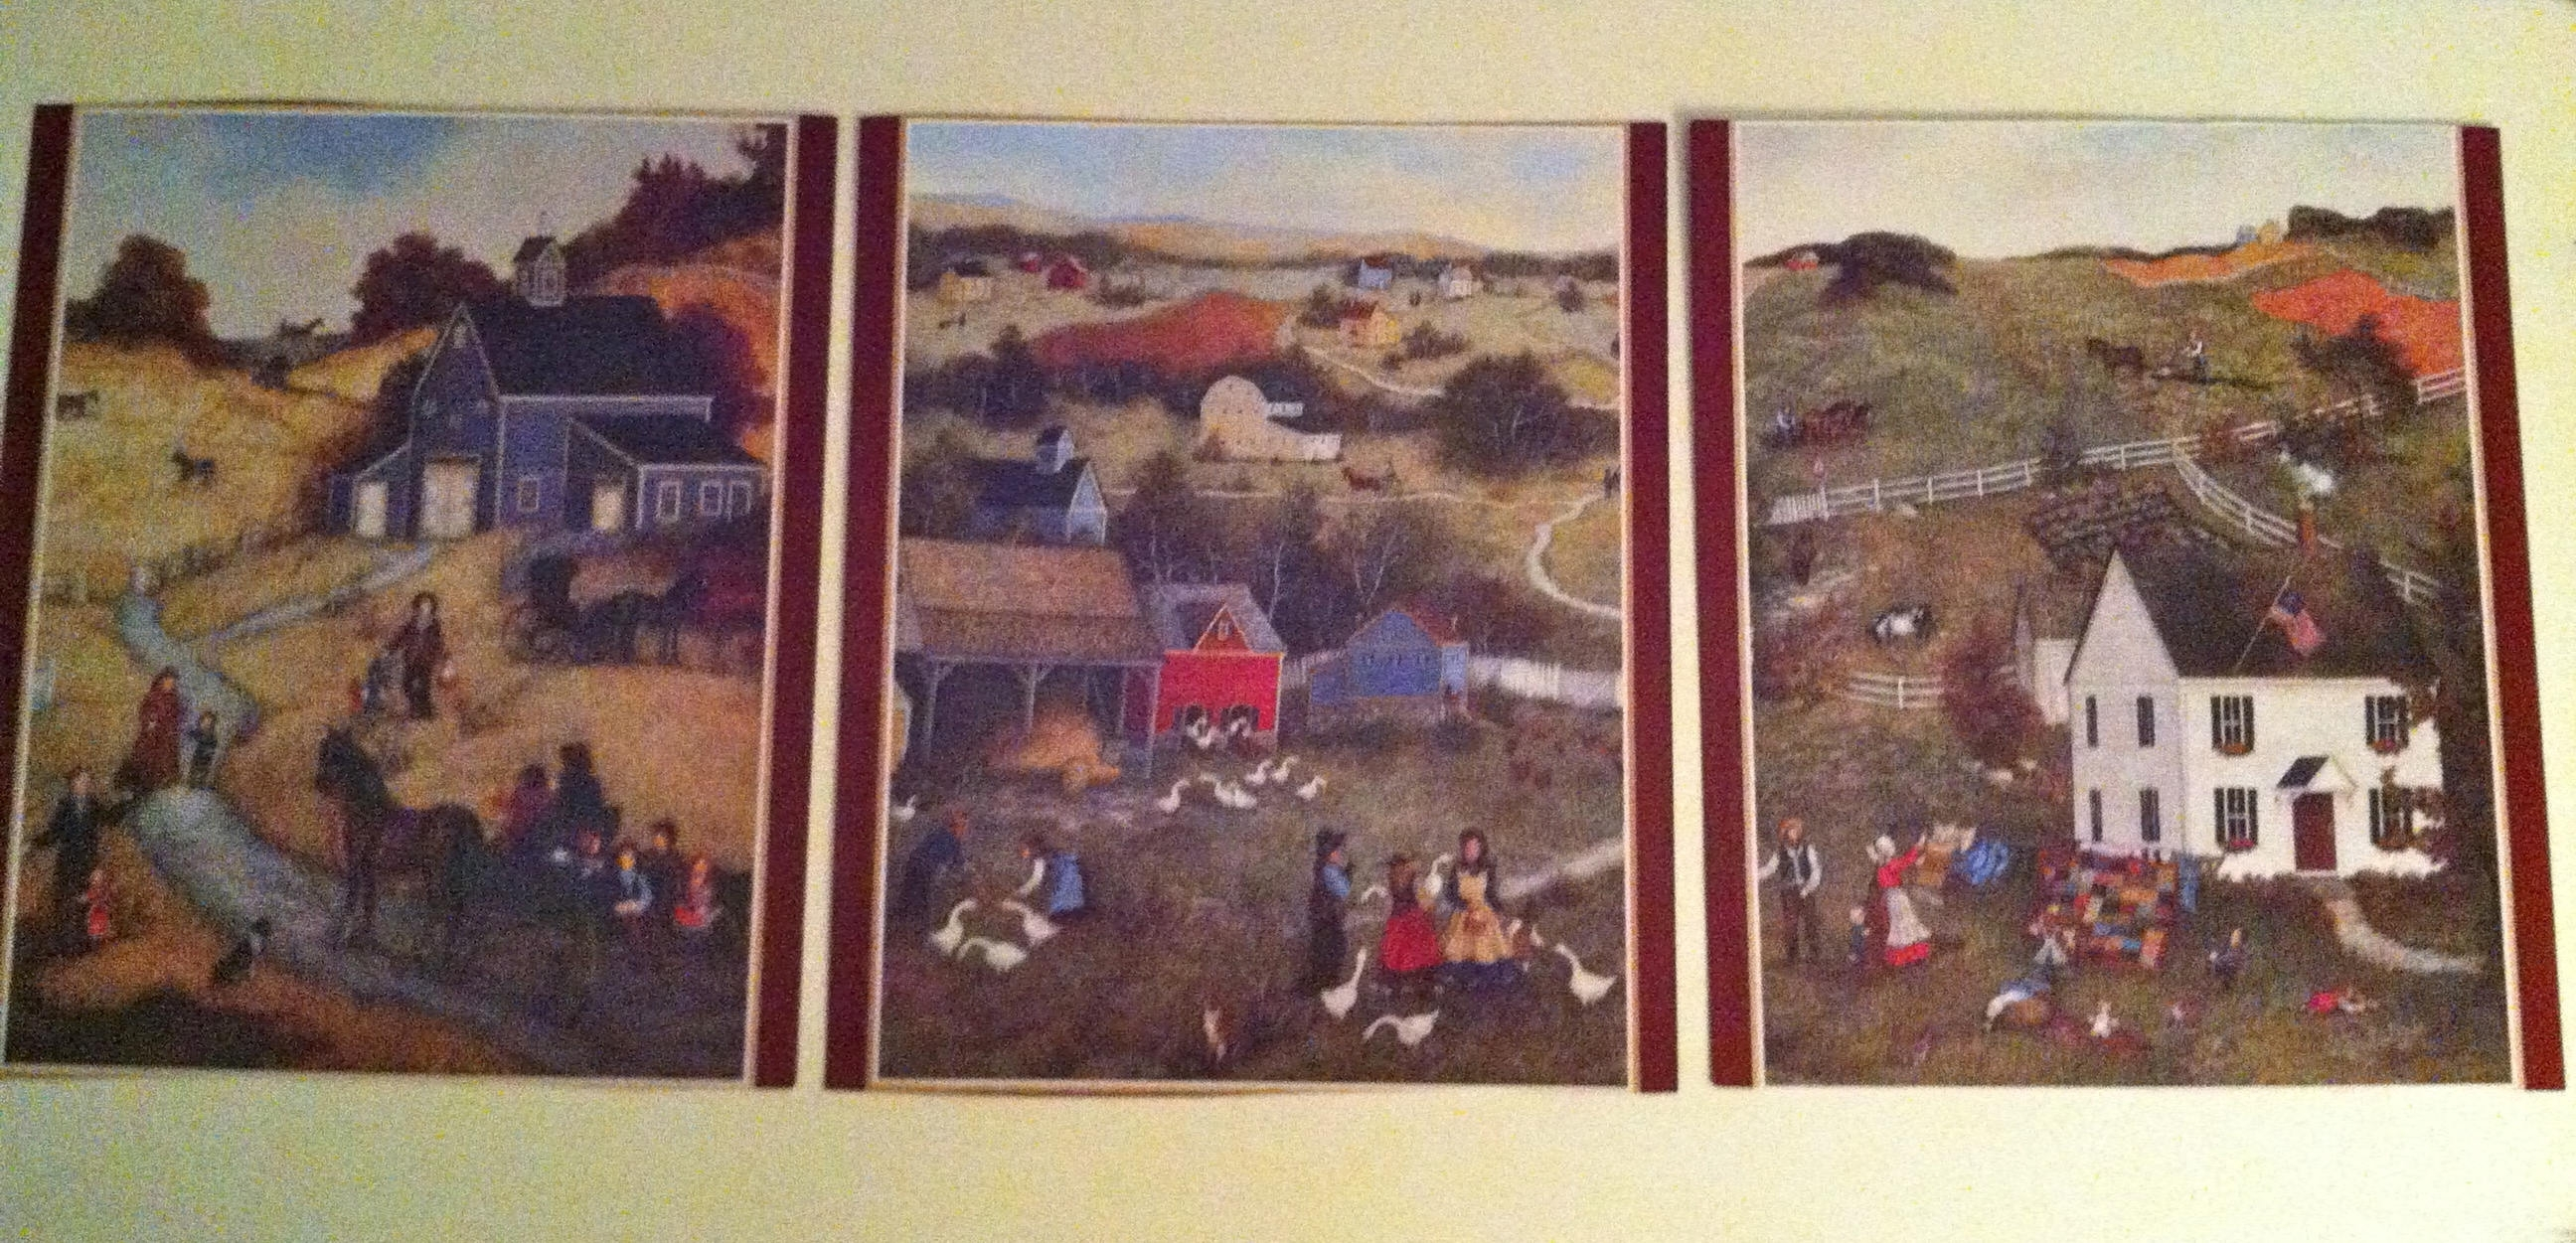 6 Prints Two Sided – Americana Primitive Art Prints/set Of Within Most Recent American Folk Art Framed Prints (View 1 of 15)